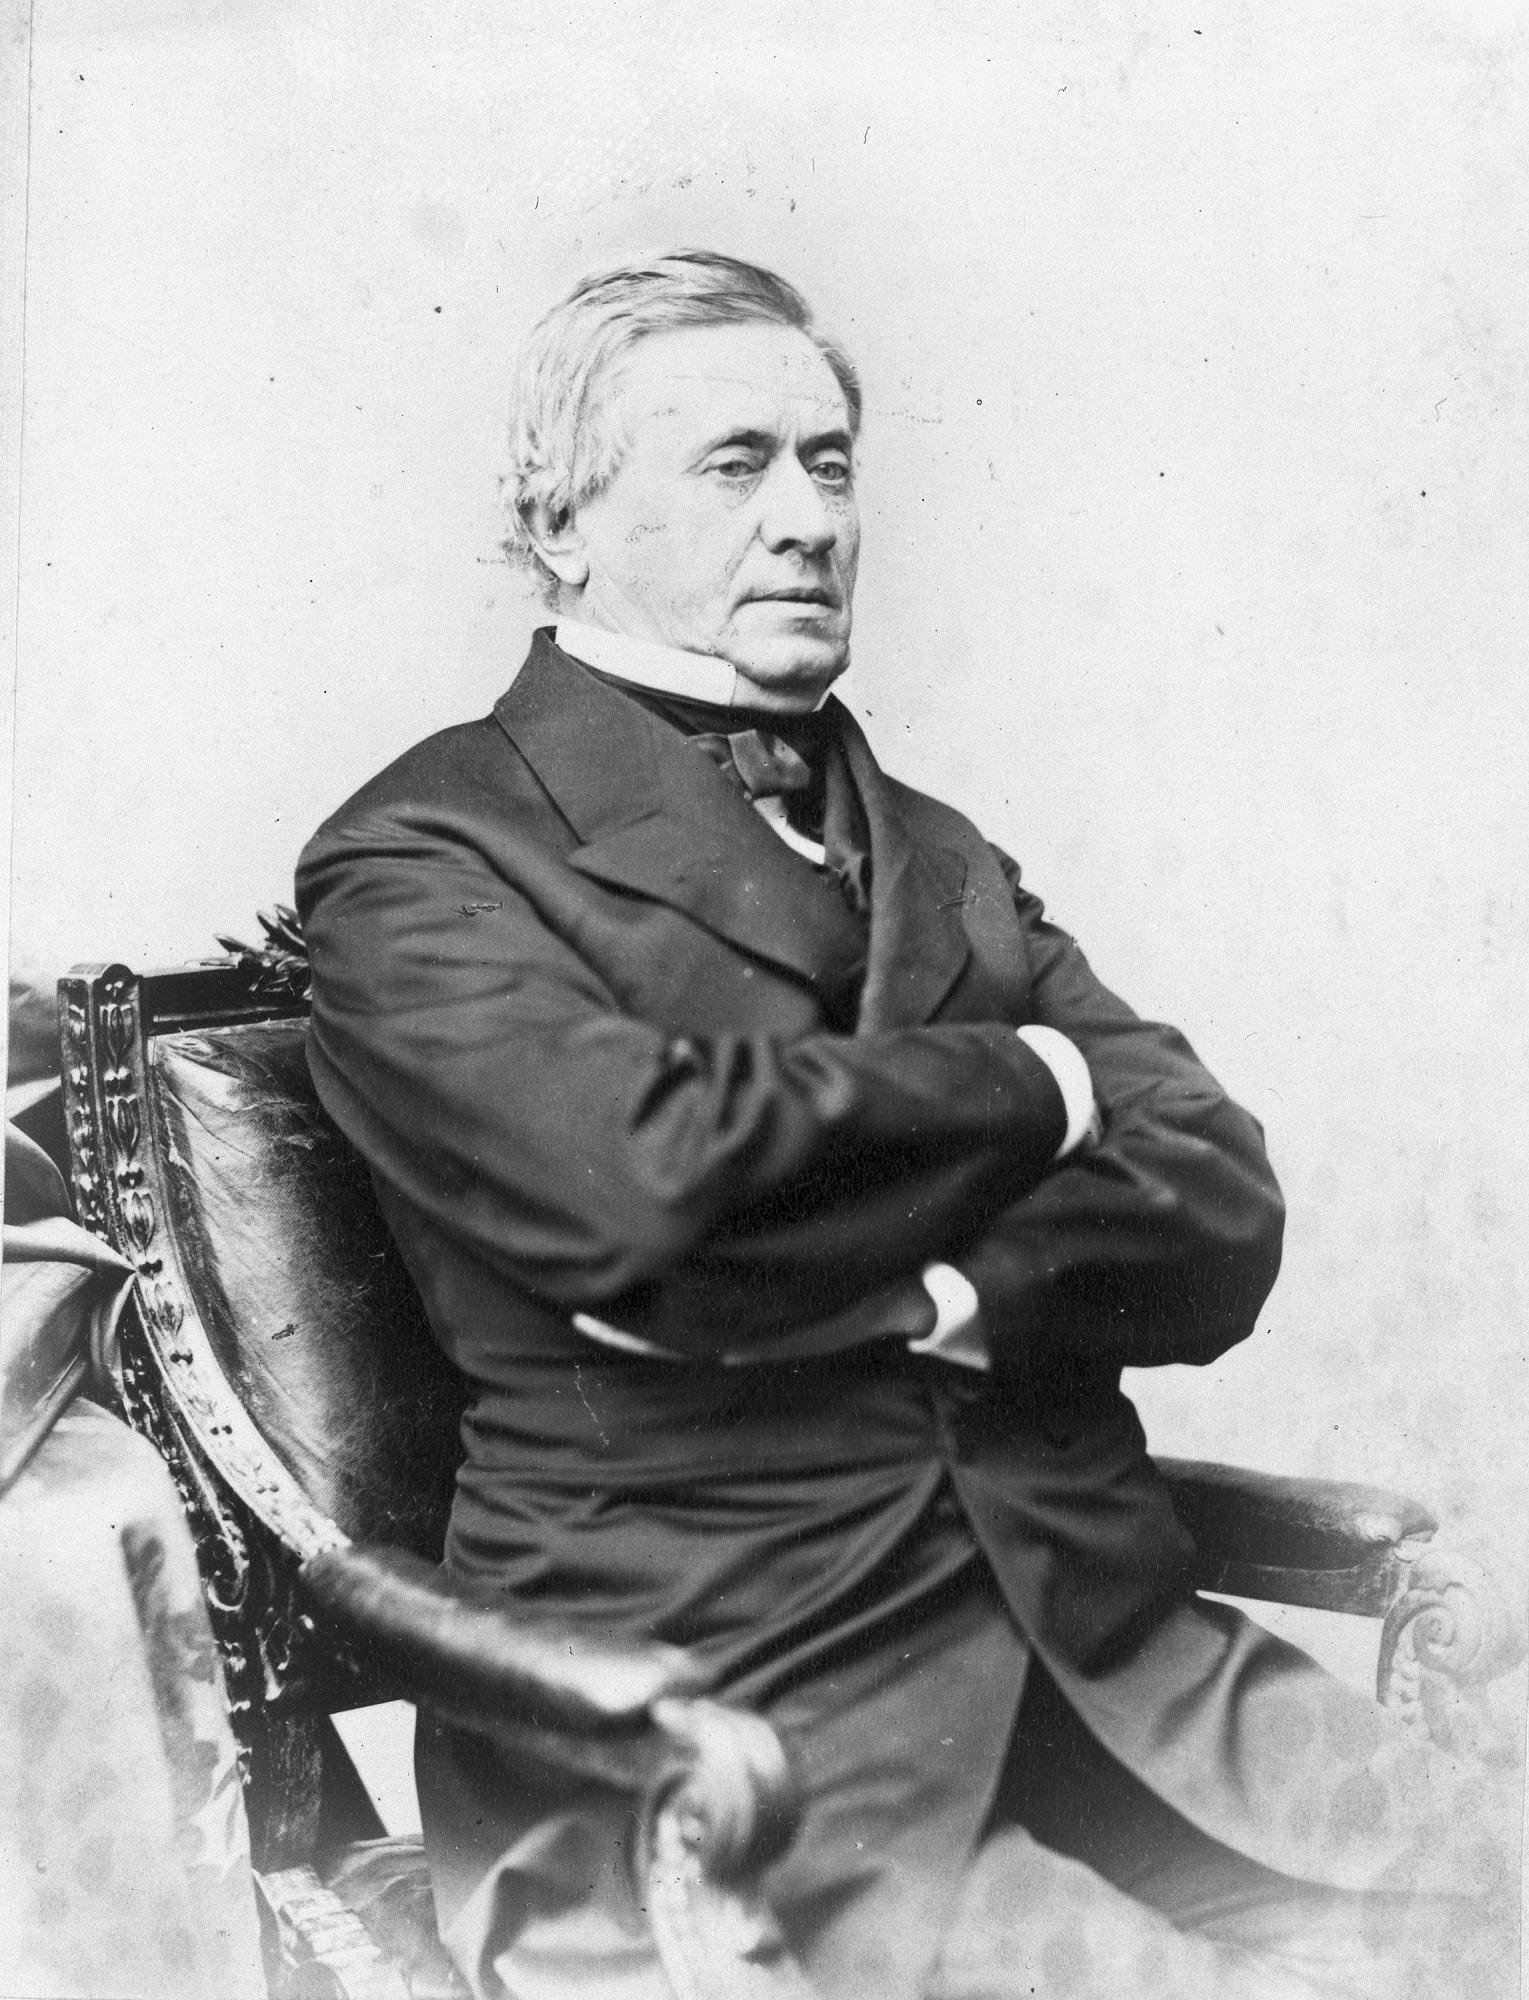 Joseph Henry Partially Paralyzed, December 5, 1877, Smithsonian Archives - History Div.